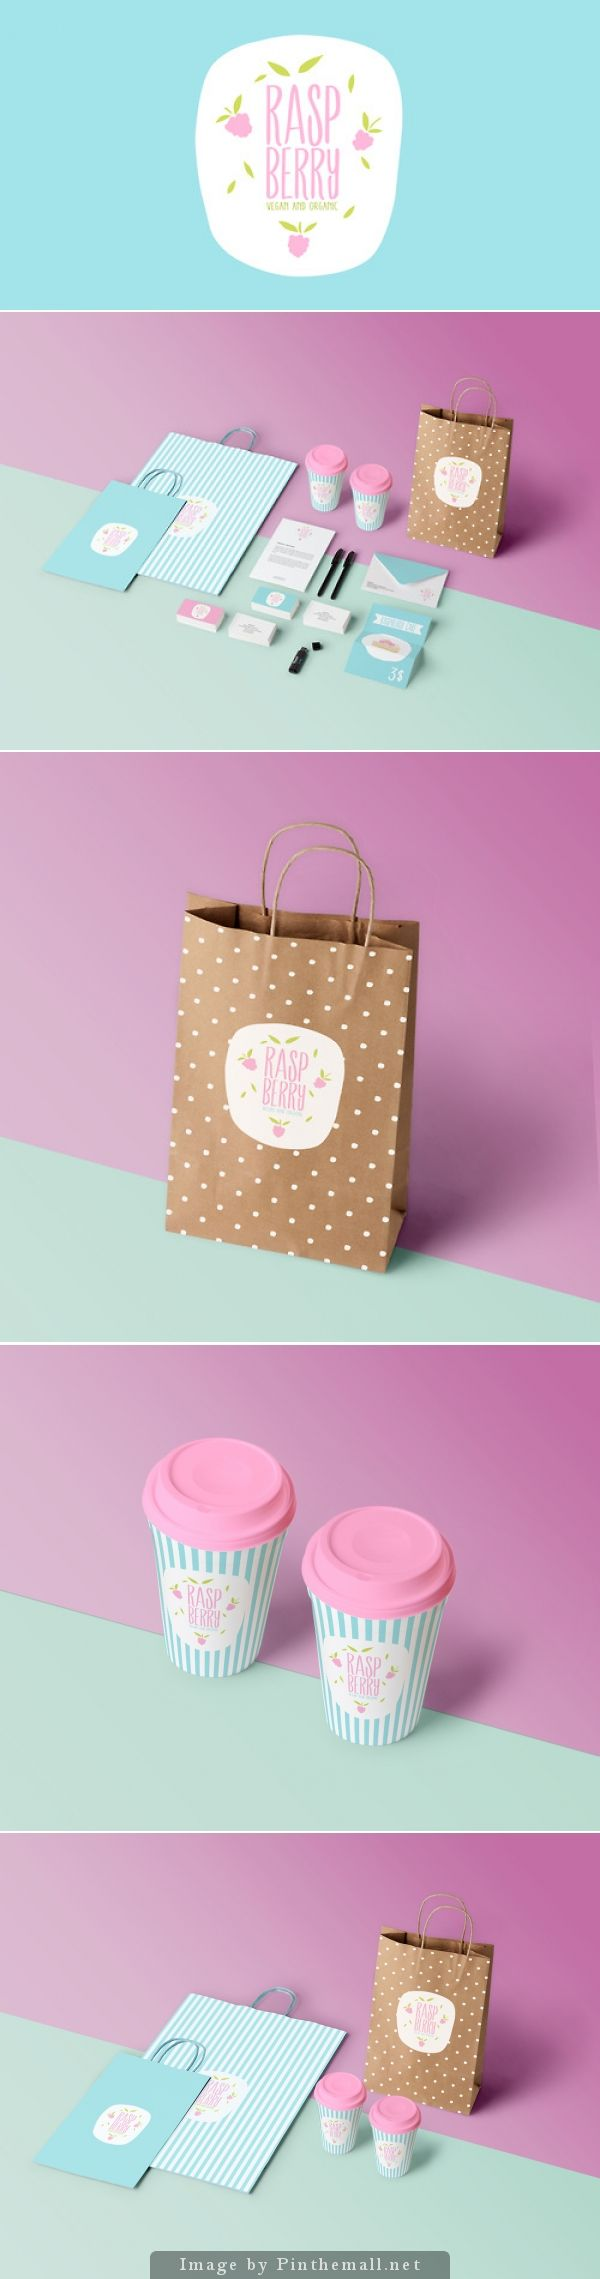 Raspberry - Vegan and Organic Confectionery by Anna Warda is simple yet appealing popular packaging design PD